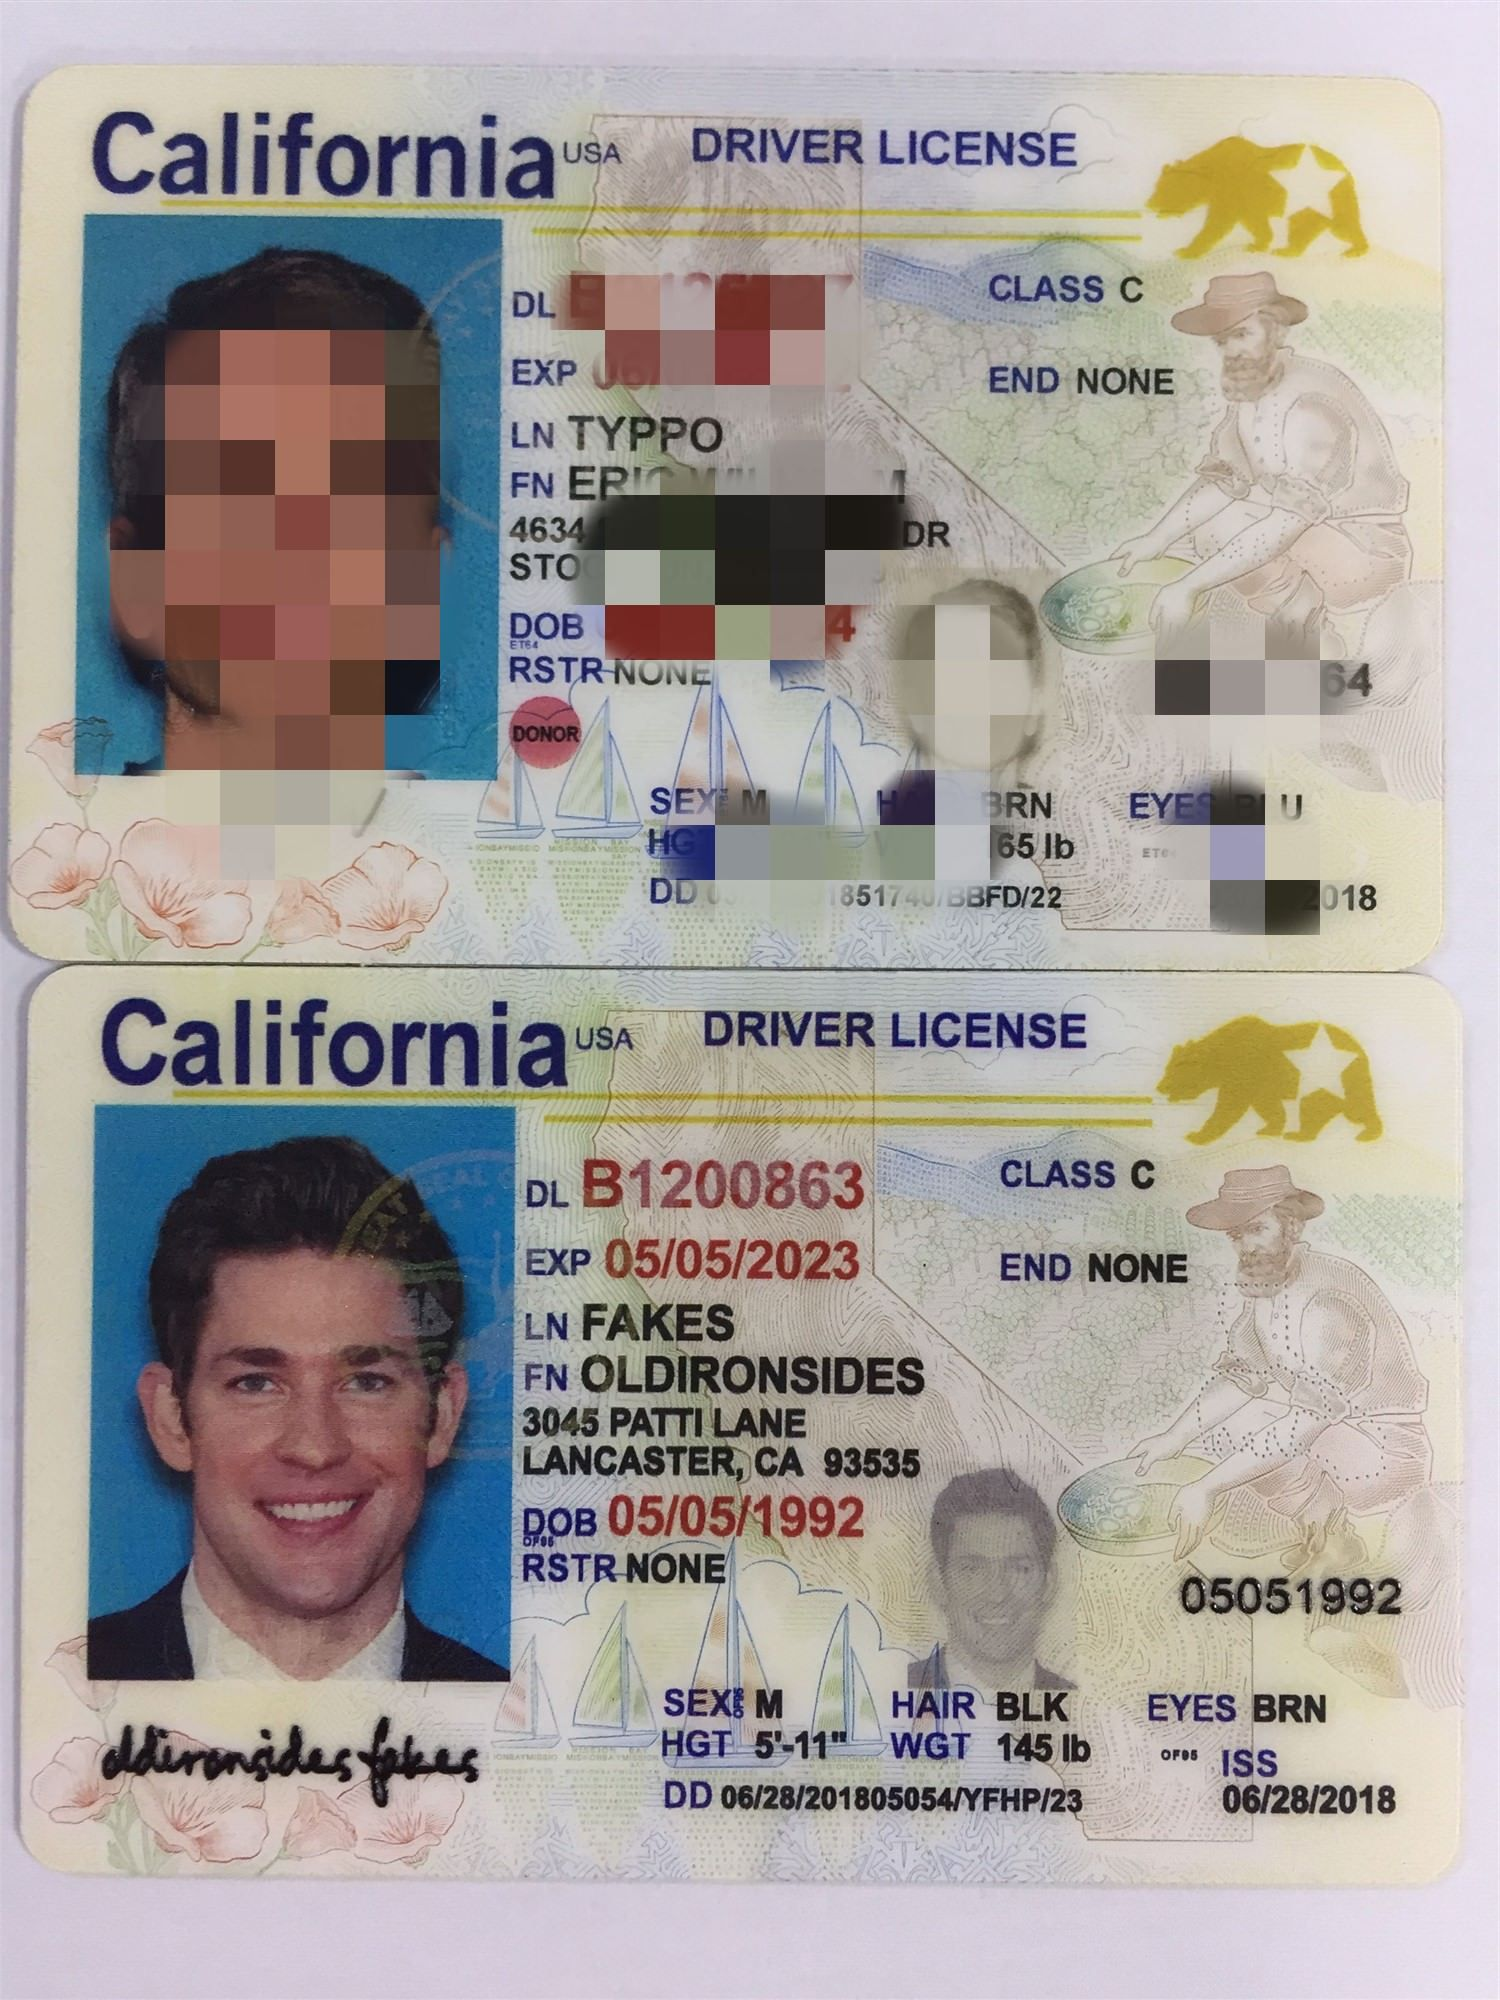 Passports Legally And Id In Driver New fake -buy Fake Drivers California 2019… License Registered Ca I… new Id Real Real